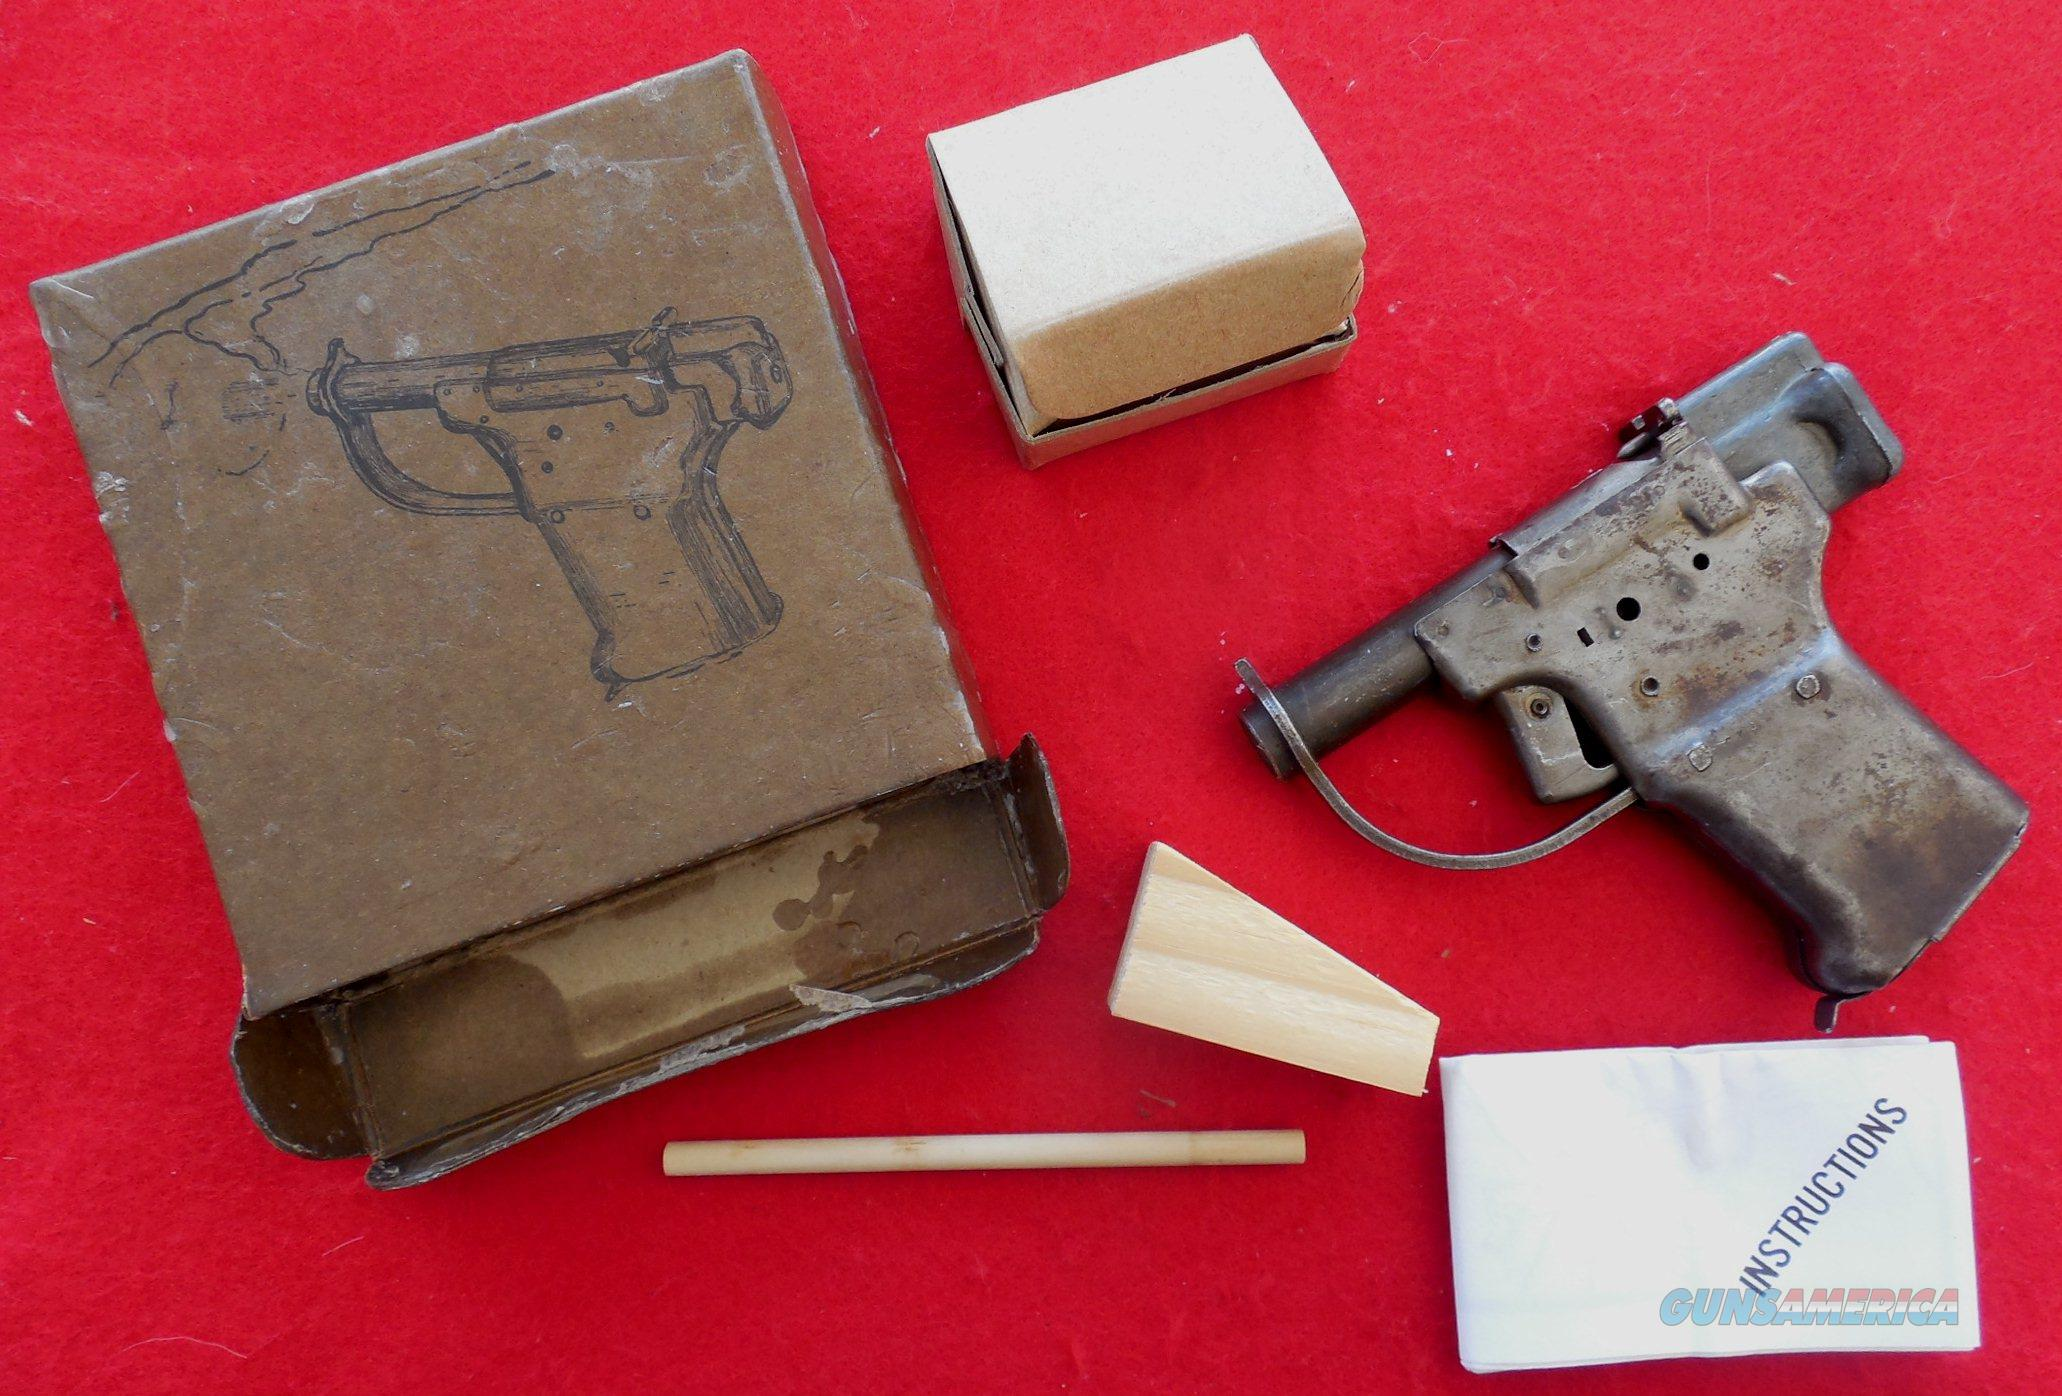 Guide Lamp FP-45 Liberator Single Shot Pistol with Box